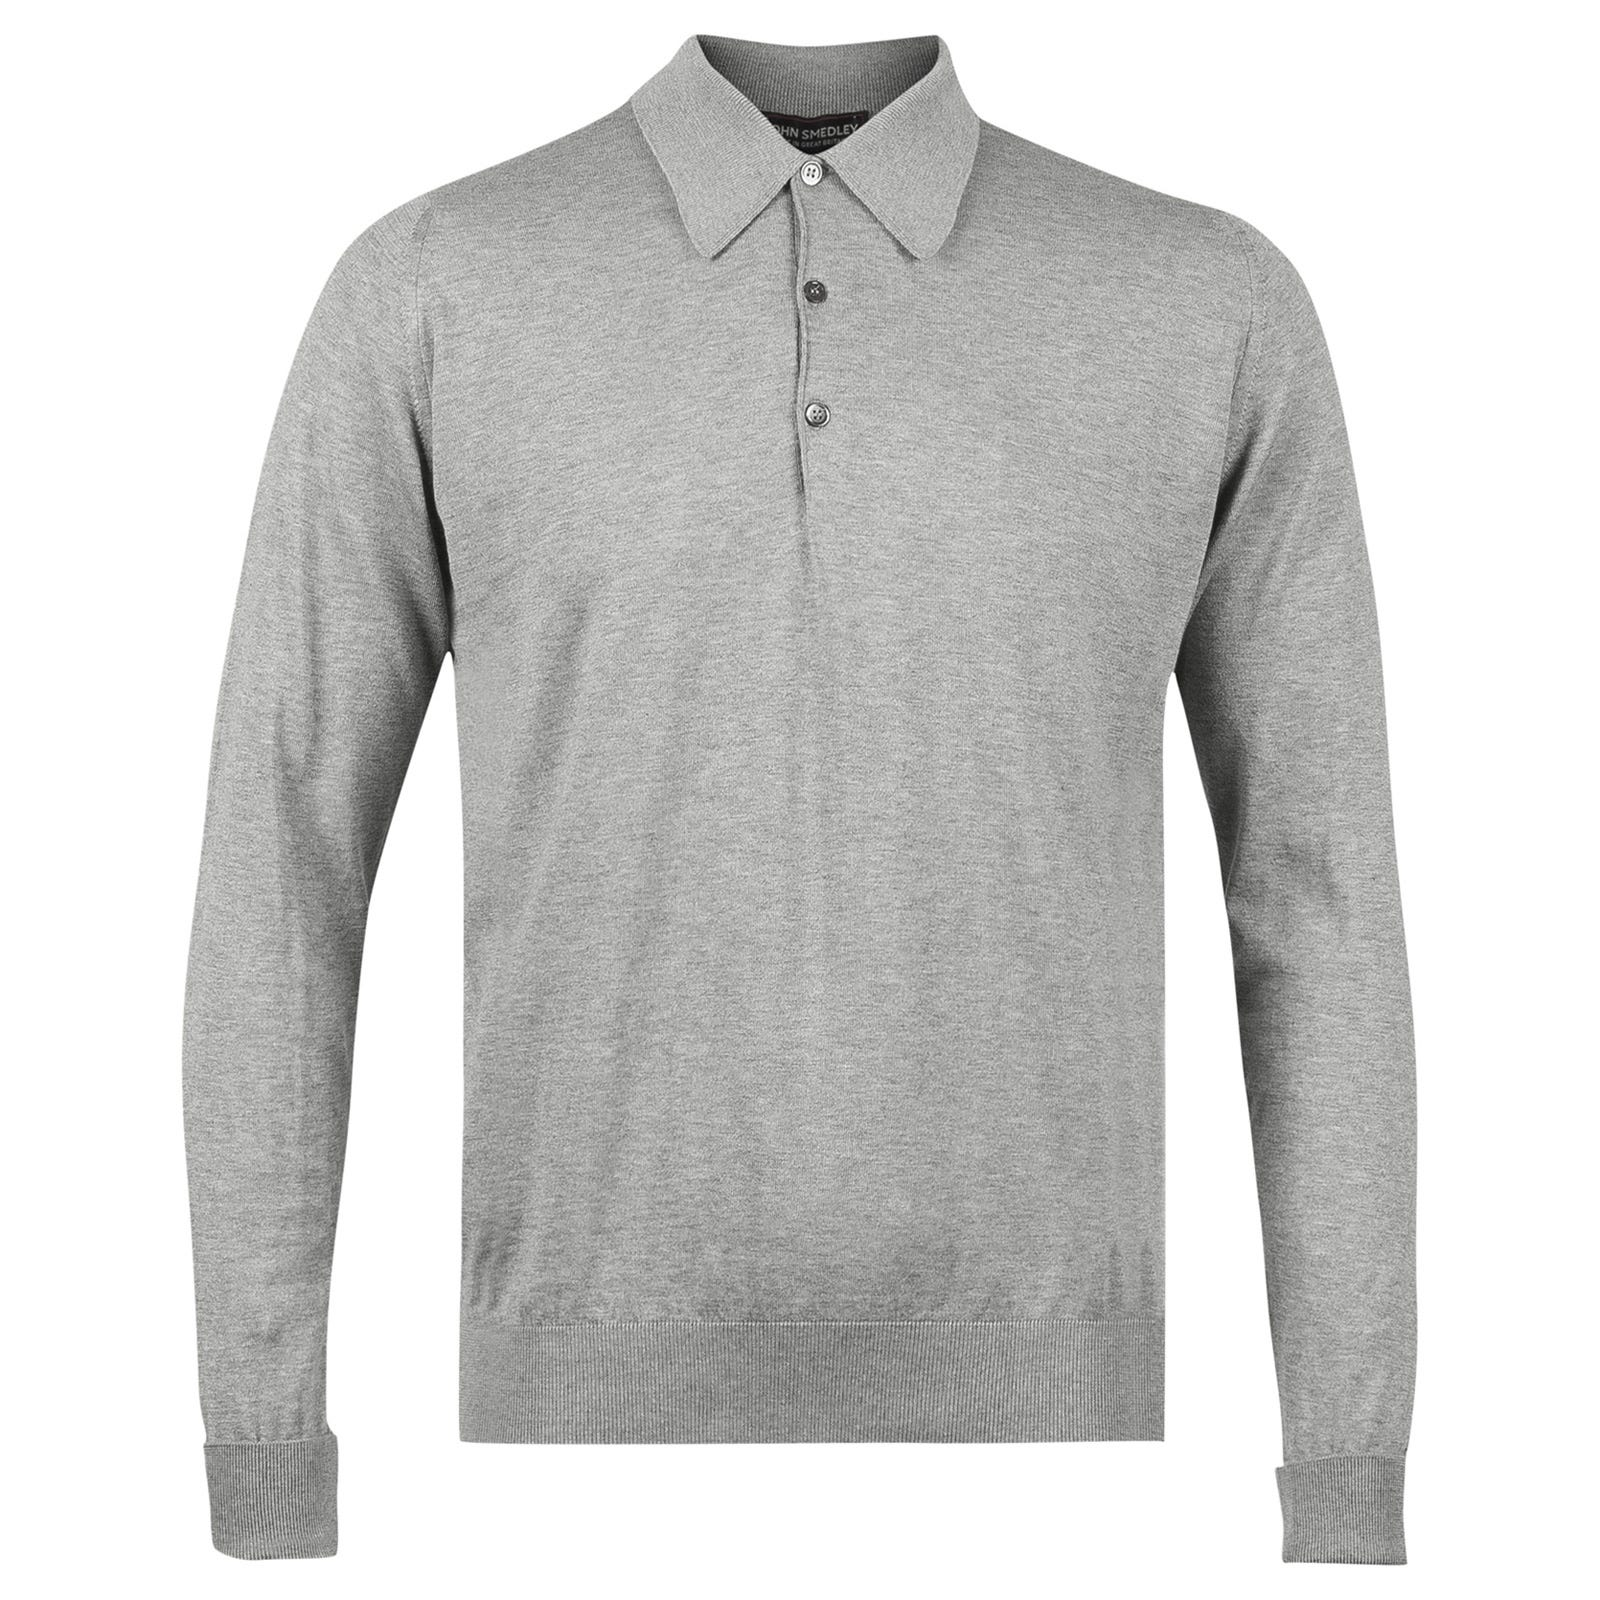 John Smedley finchley Sea Island Cotton Shirt in Silver-S